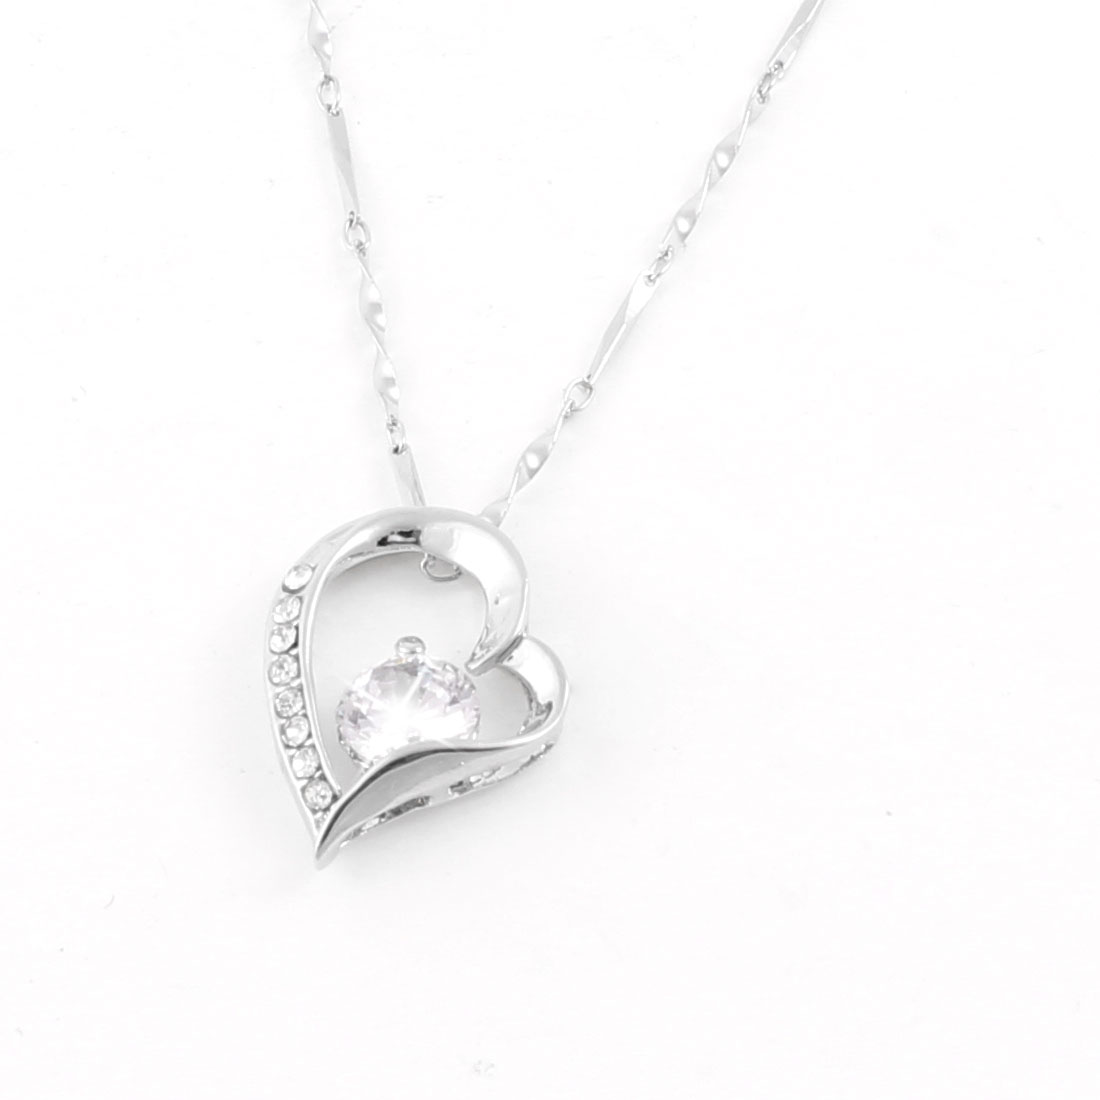 Lady Plastic Rhinestone Metal Chain Heart Shape Pendant Necklace Silver Tone